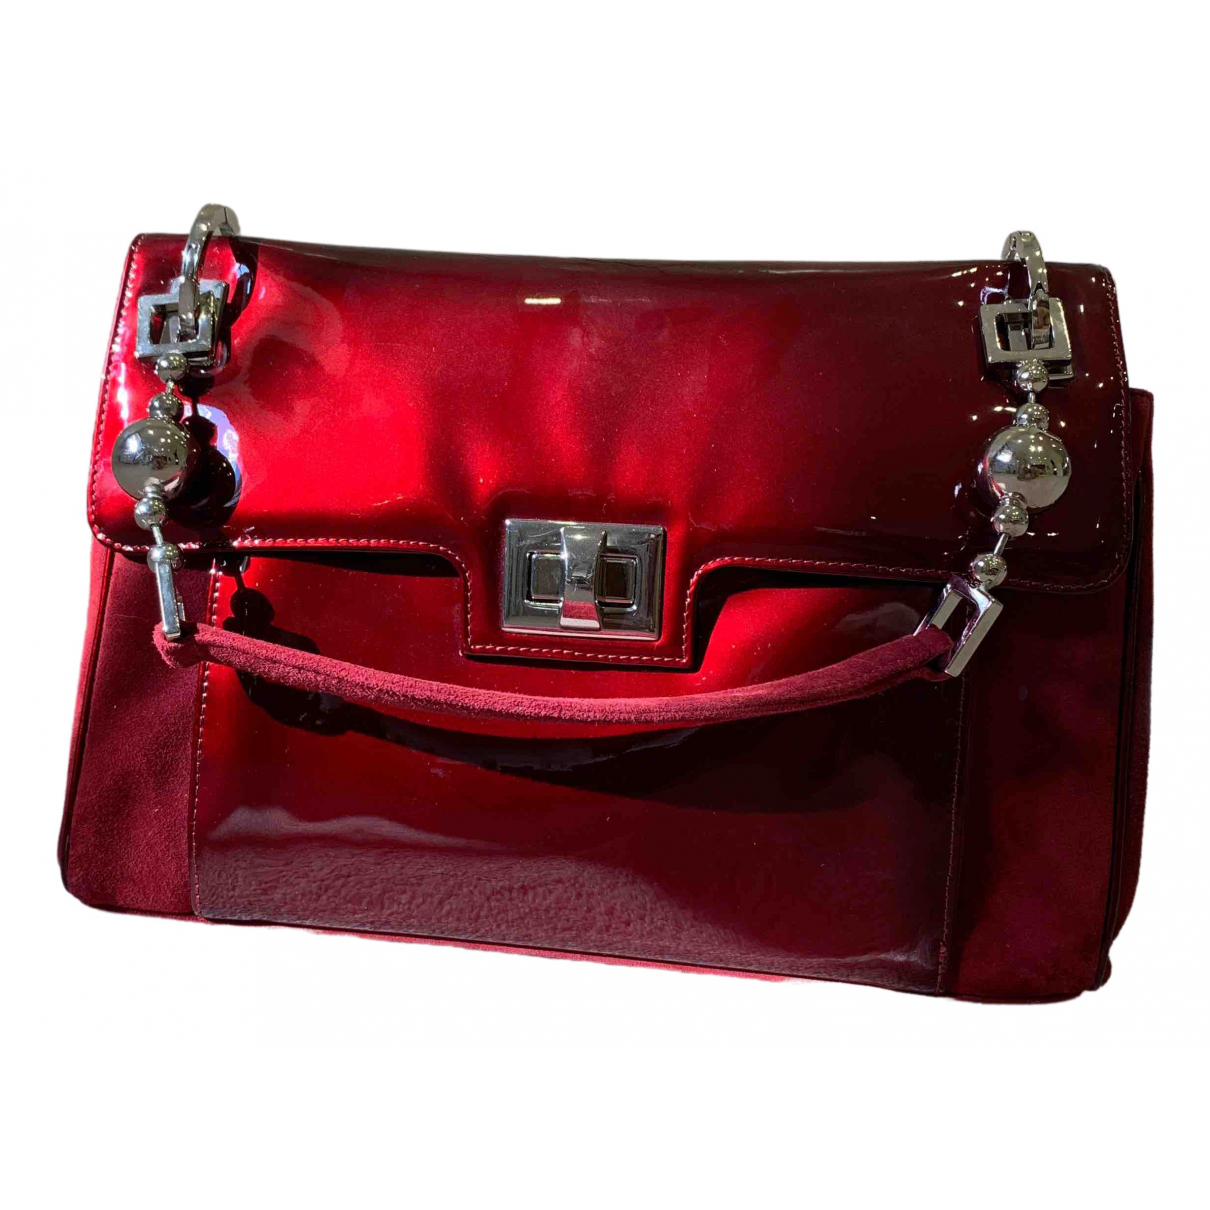 Russell & Bromley \N Red Patent leather handbag for Women \N